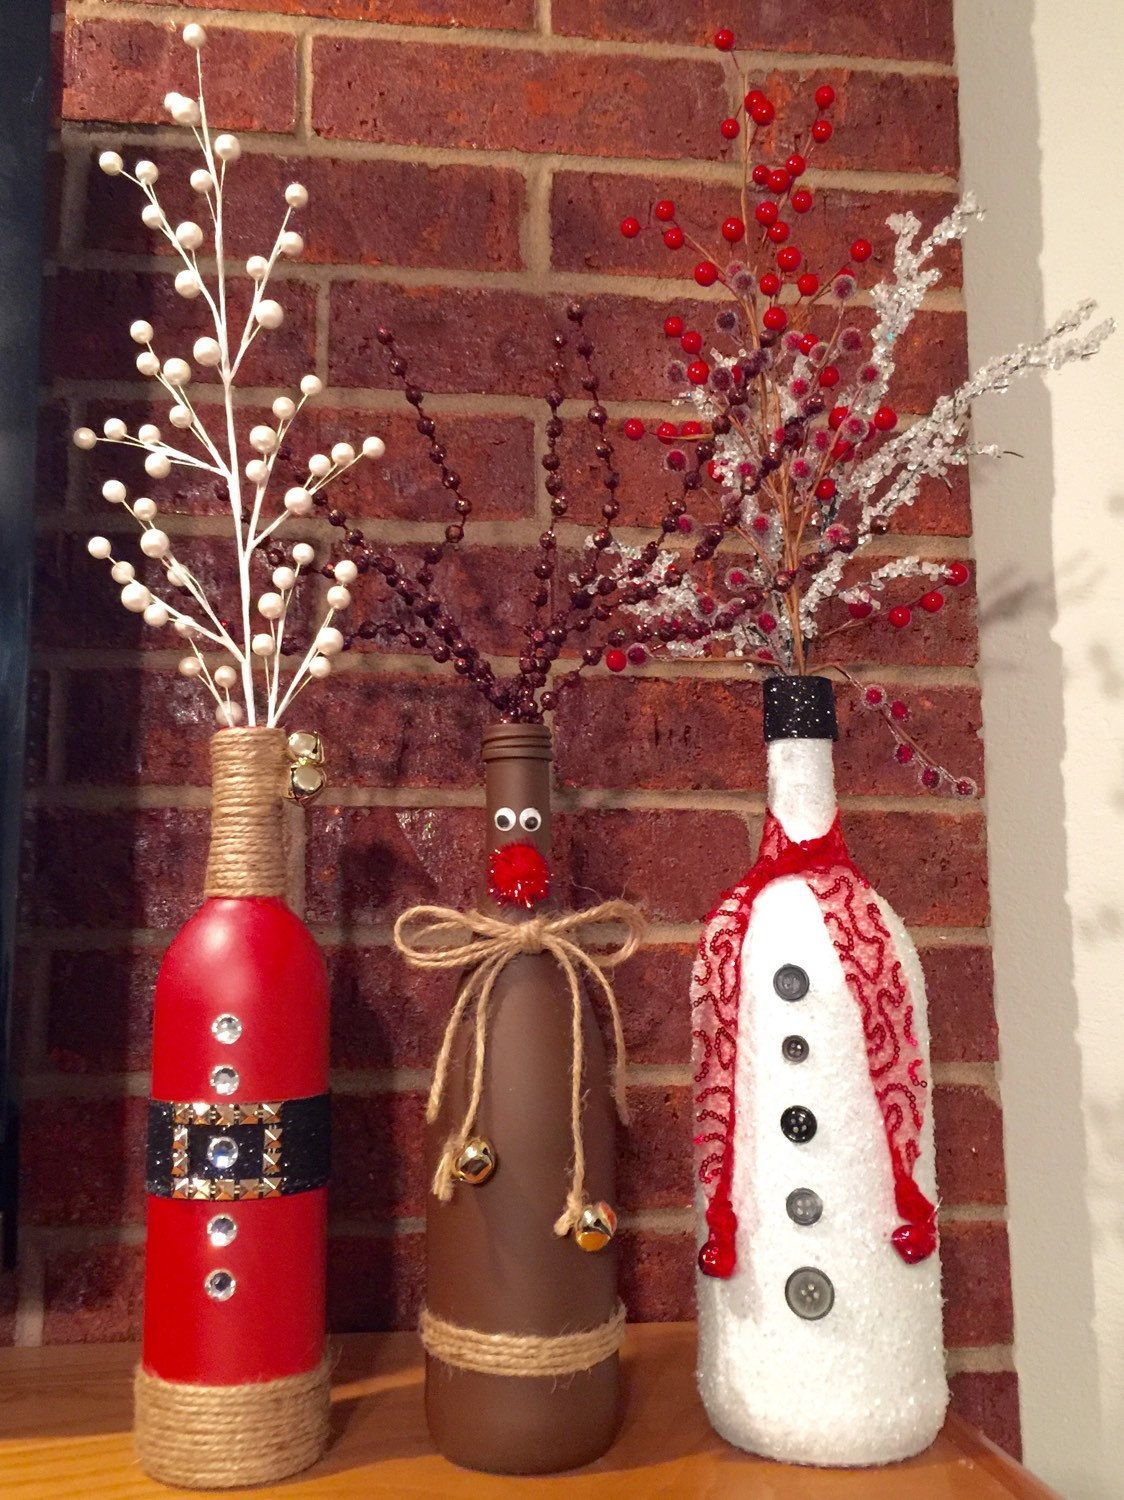 Homemade Christmas Crafts Barbie Products Newspaper Basket Paper Clay Cardboard Art Paper Beads Ai In 2020 Christmas Wine Christmas Centerpieces Christmas Wine Bottles